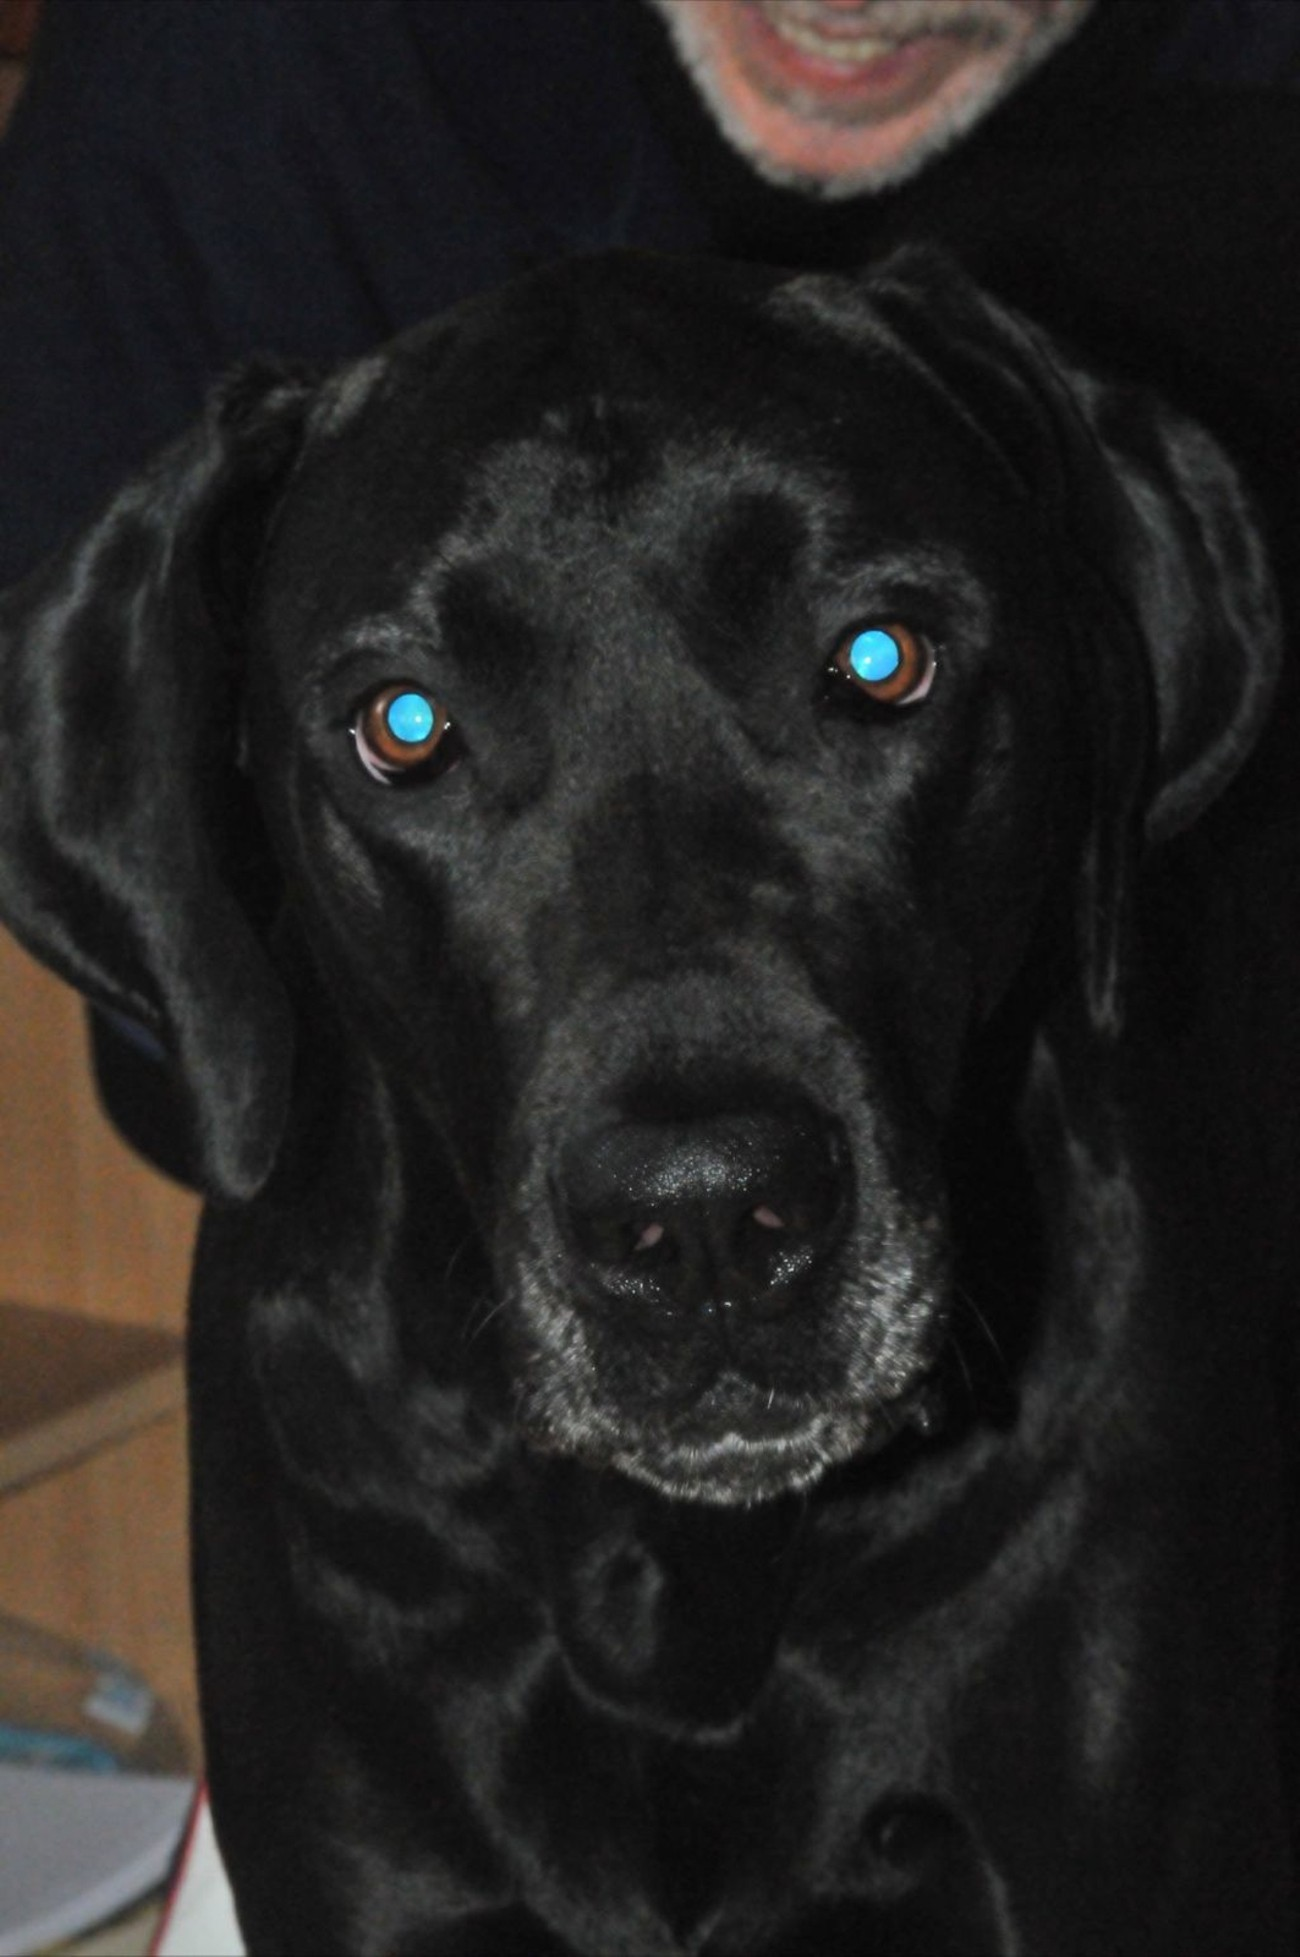 Normally a portrait tries to avoid reflection of the Flash in the eyes. Here I have deliberately left it to emphasize the love that this beautiful animal radiates through his eyes